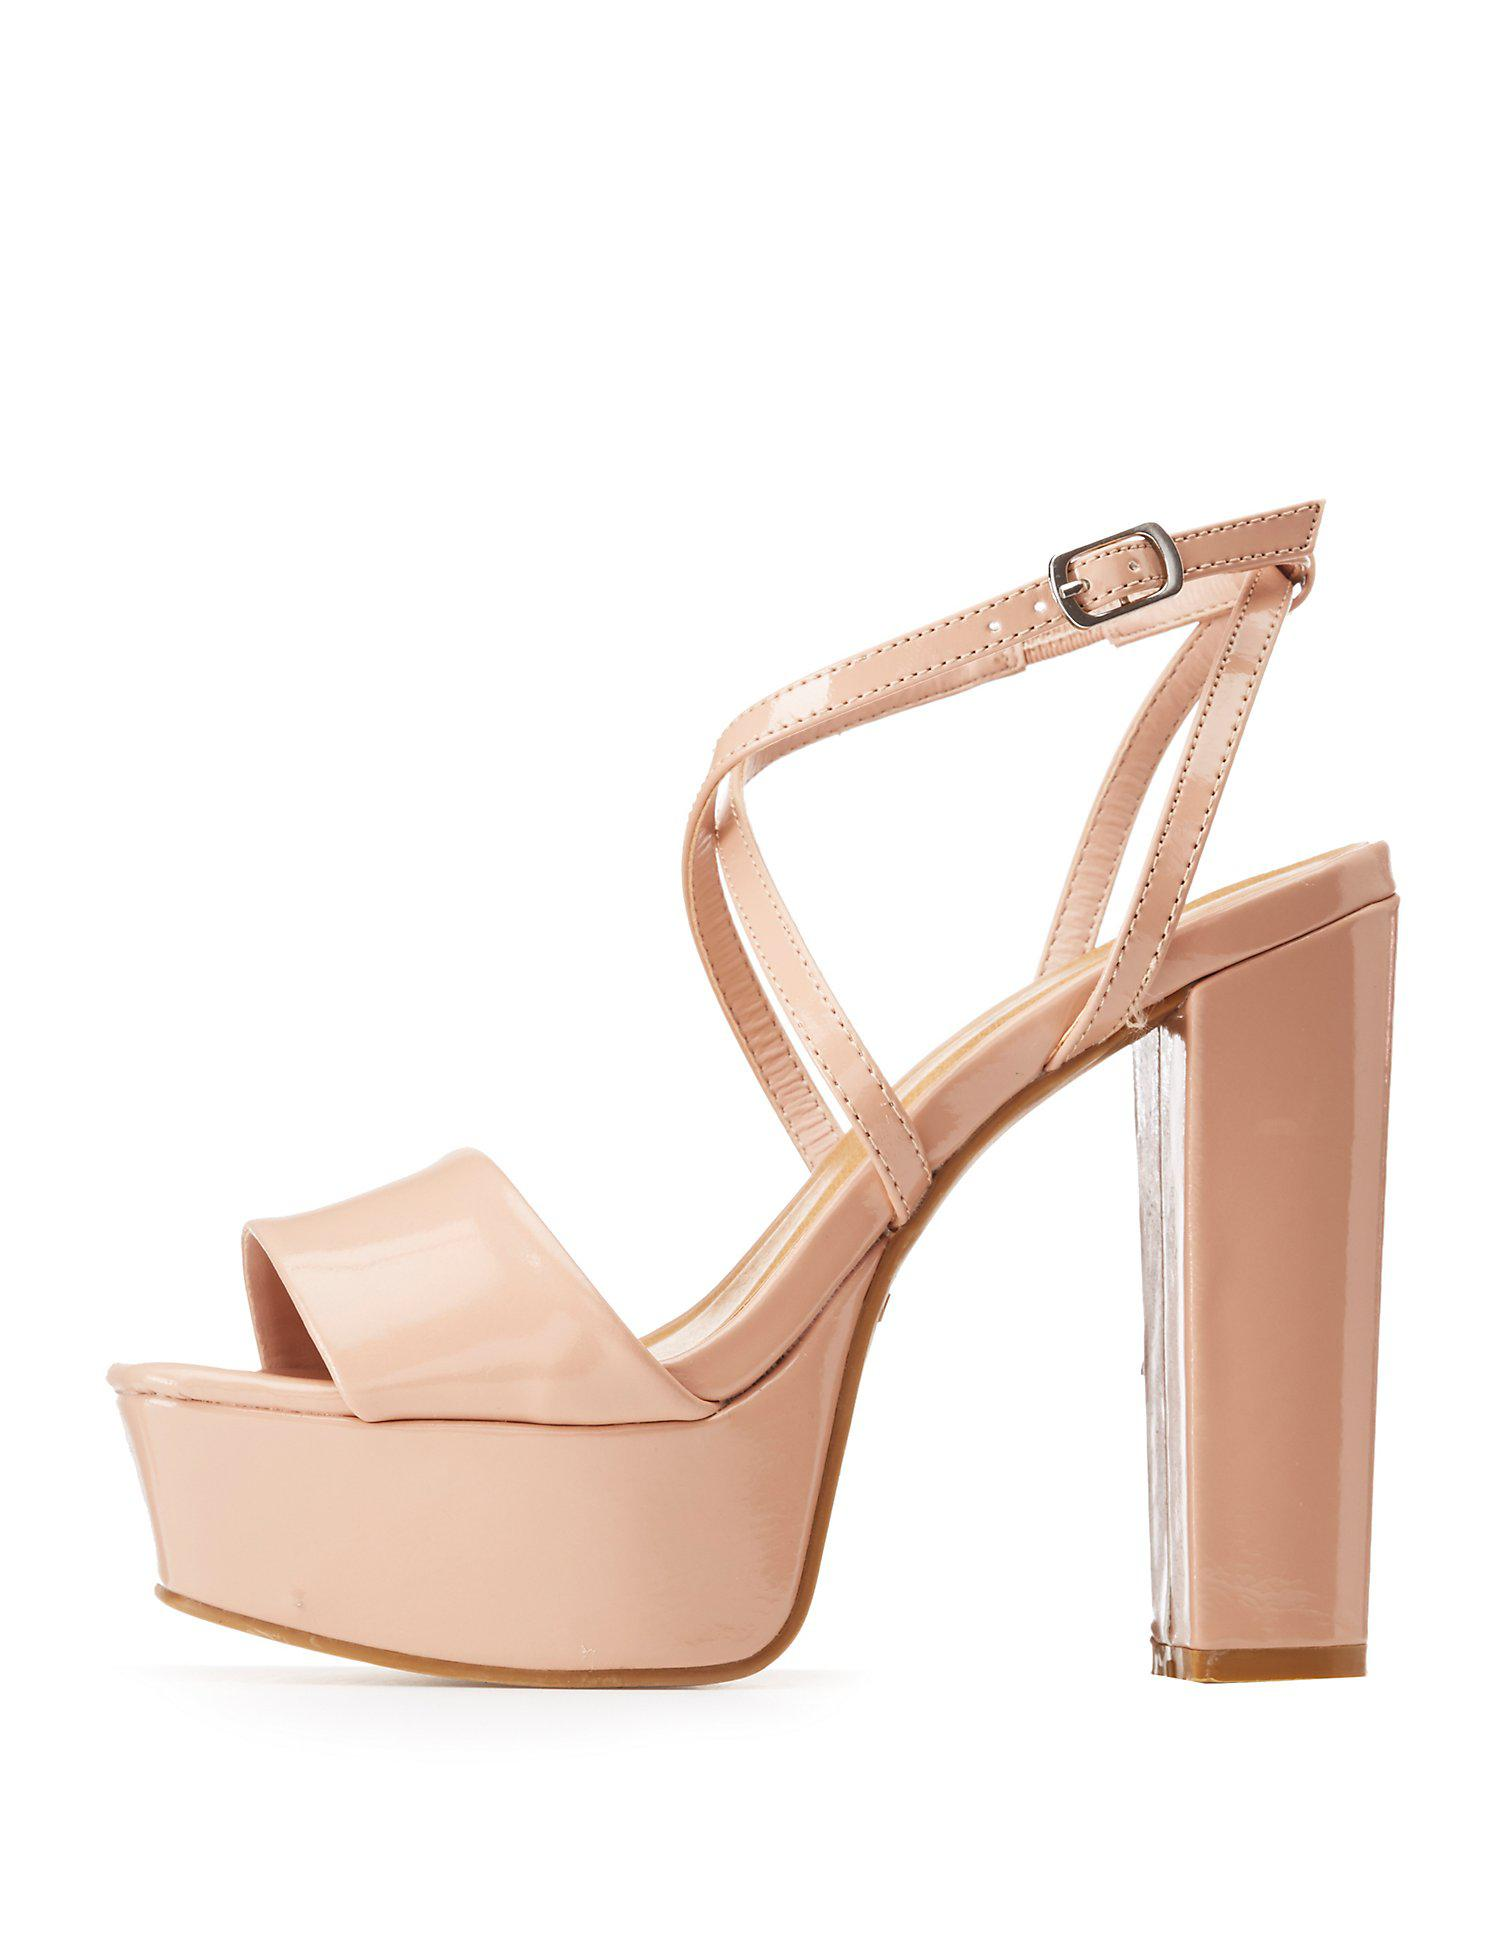 921f0f59f8ac Lyst - Charlotte Russe Bamboo Cross Strap Wedge Sandals - Save 61%